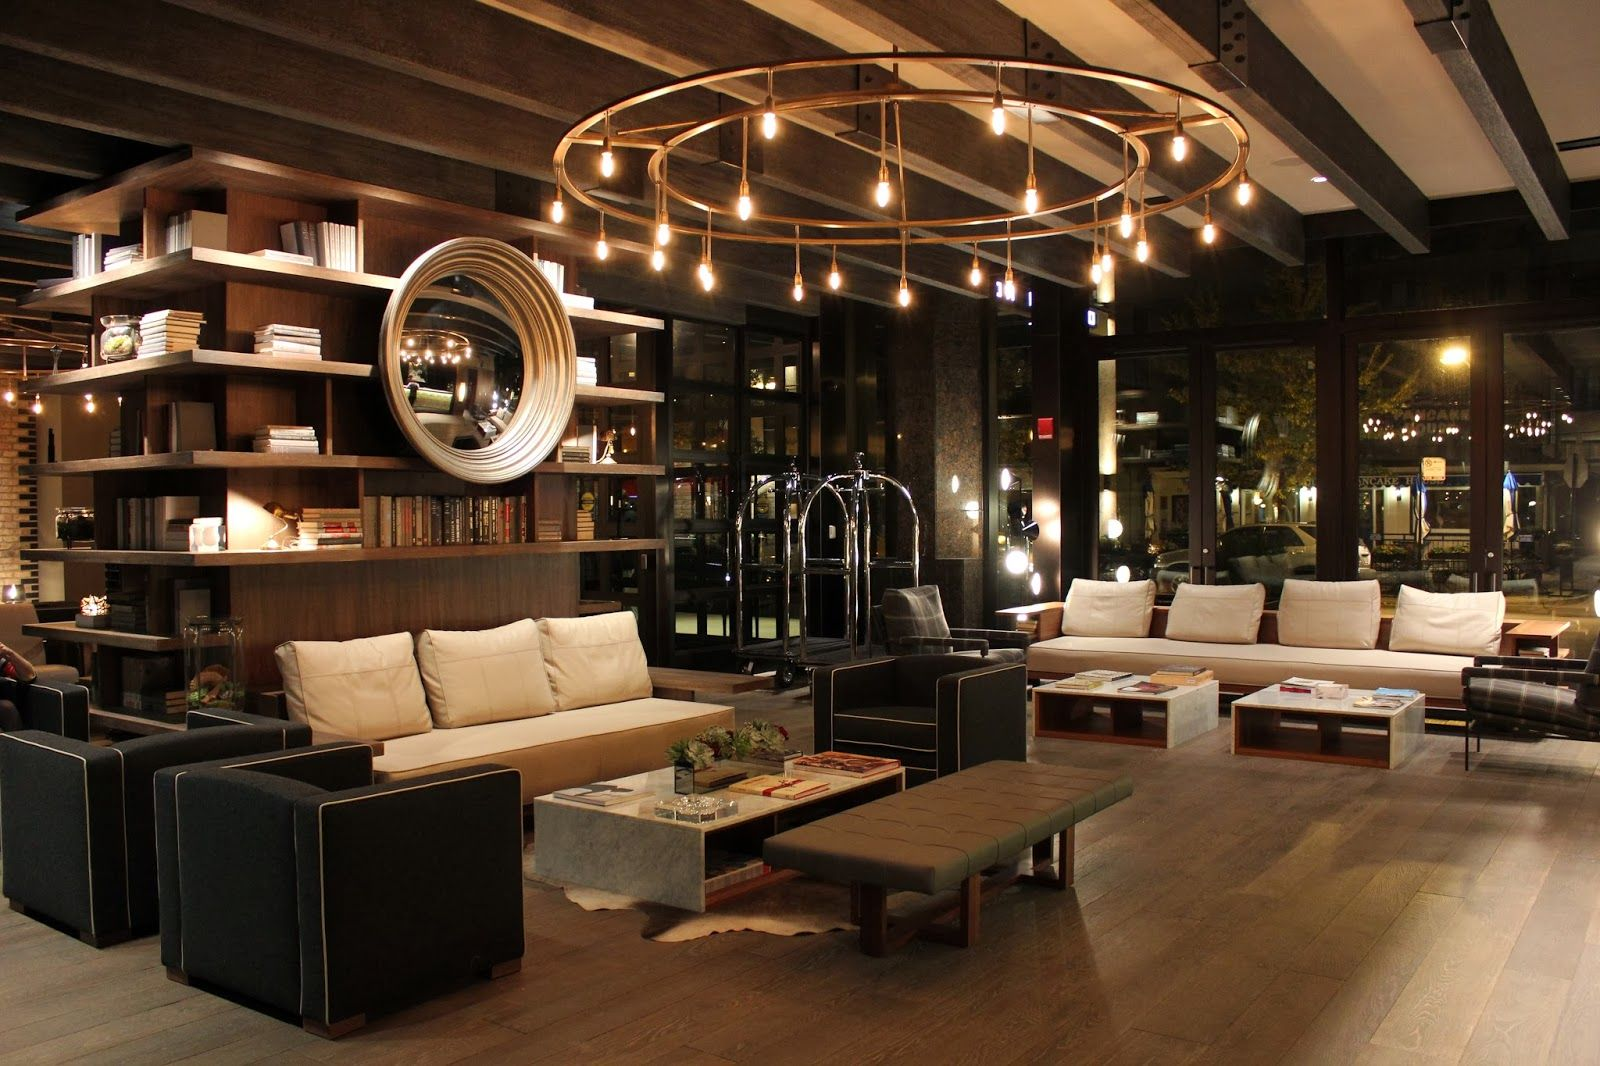 Thompson hotel chicago a sophisticated hotel in the - Interior design for hotels and restaurants ...